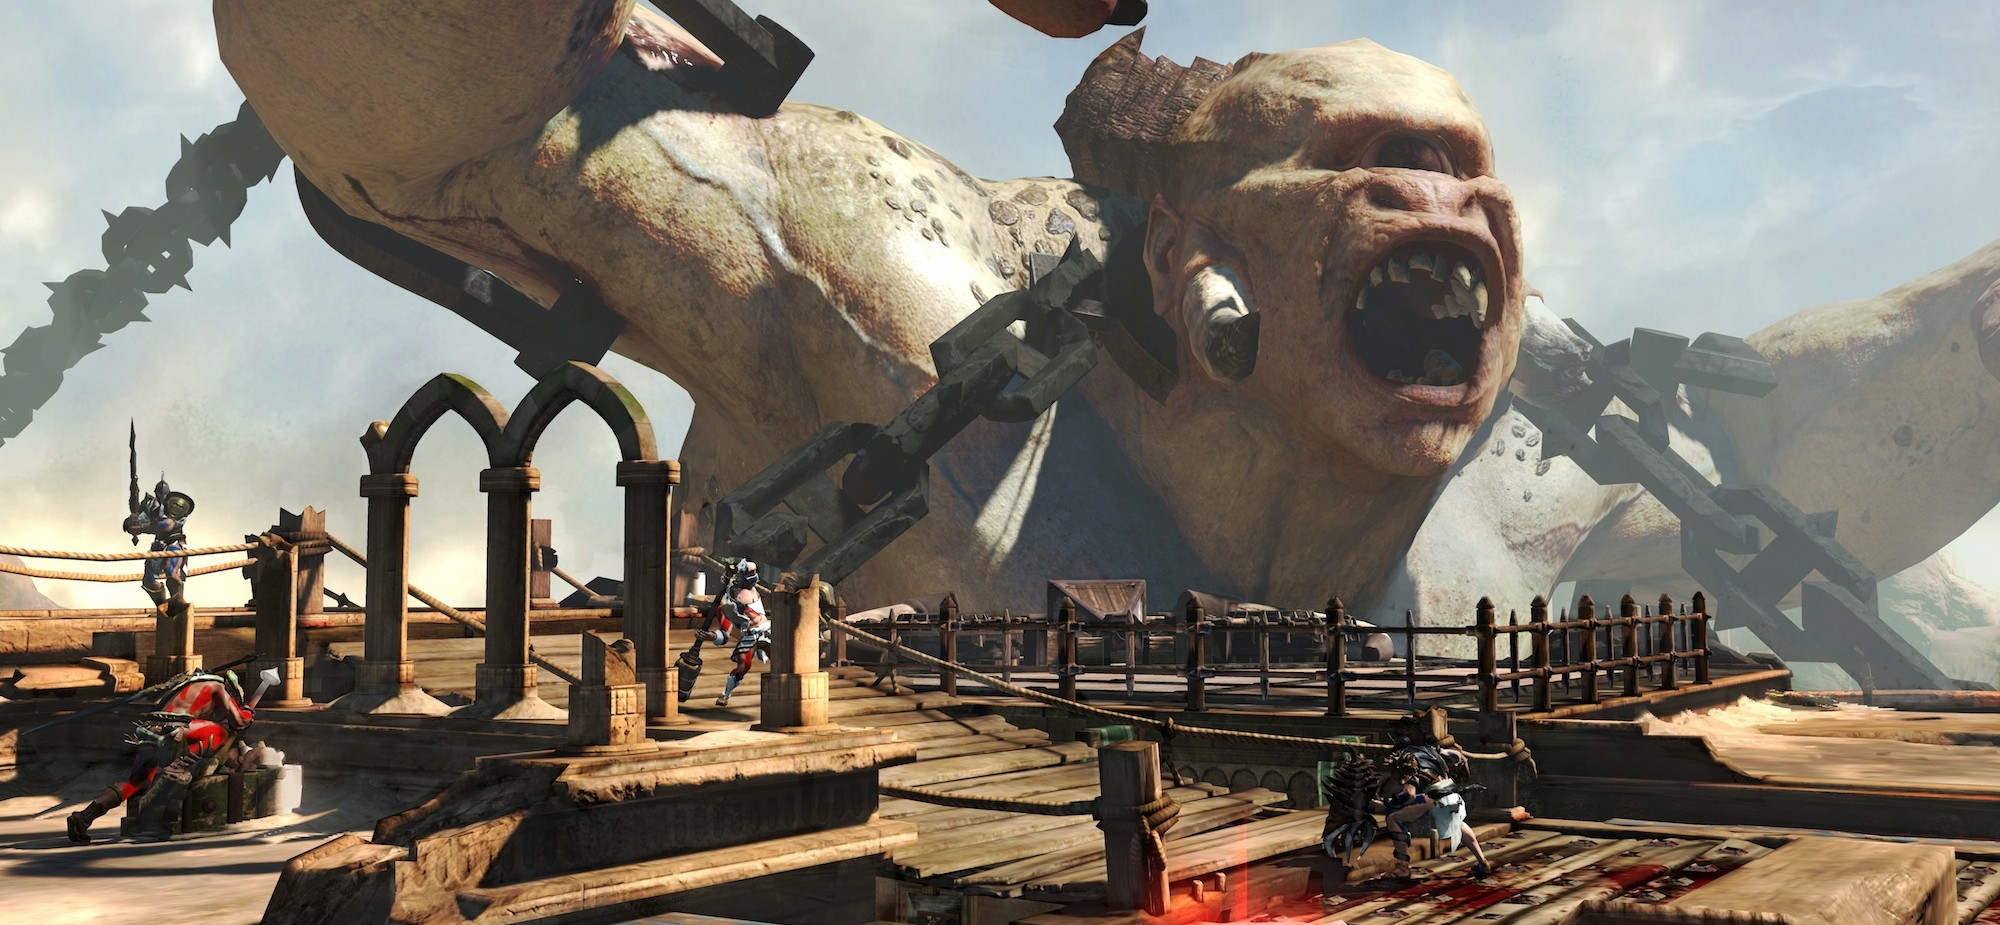 'God of War: Ascension' developer diary looks at multiplayer